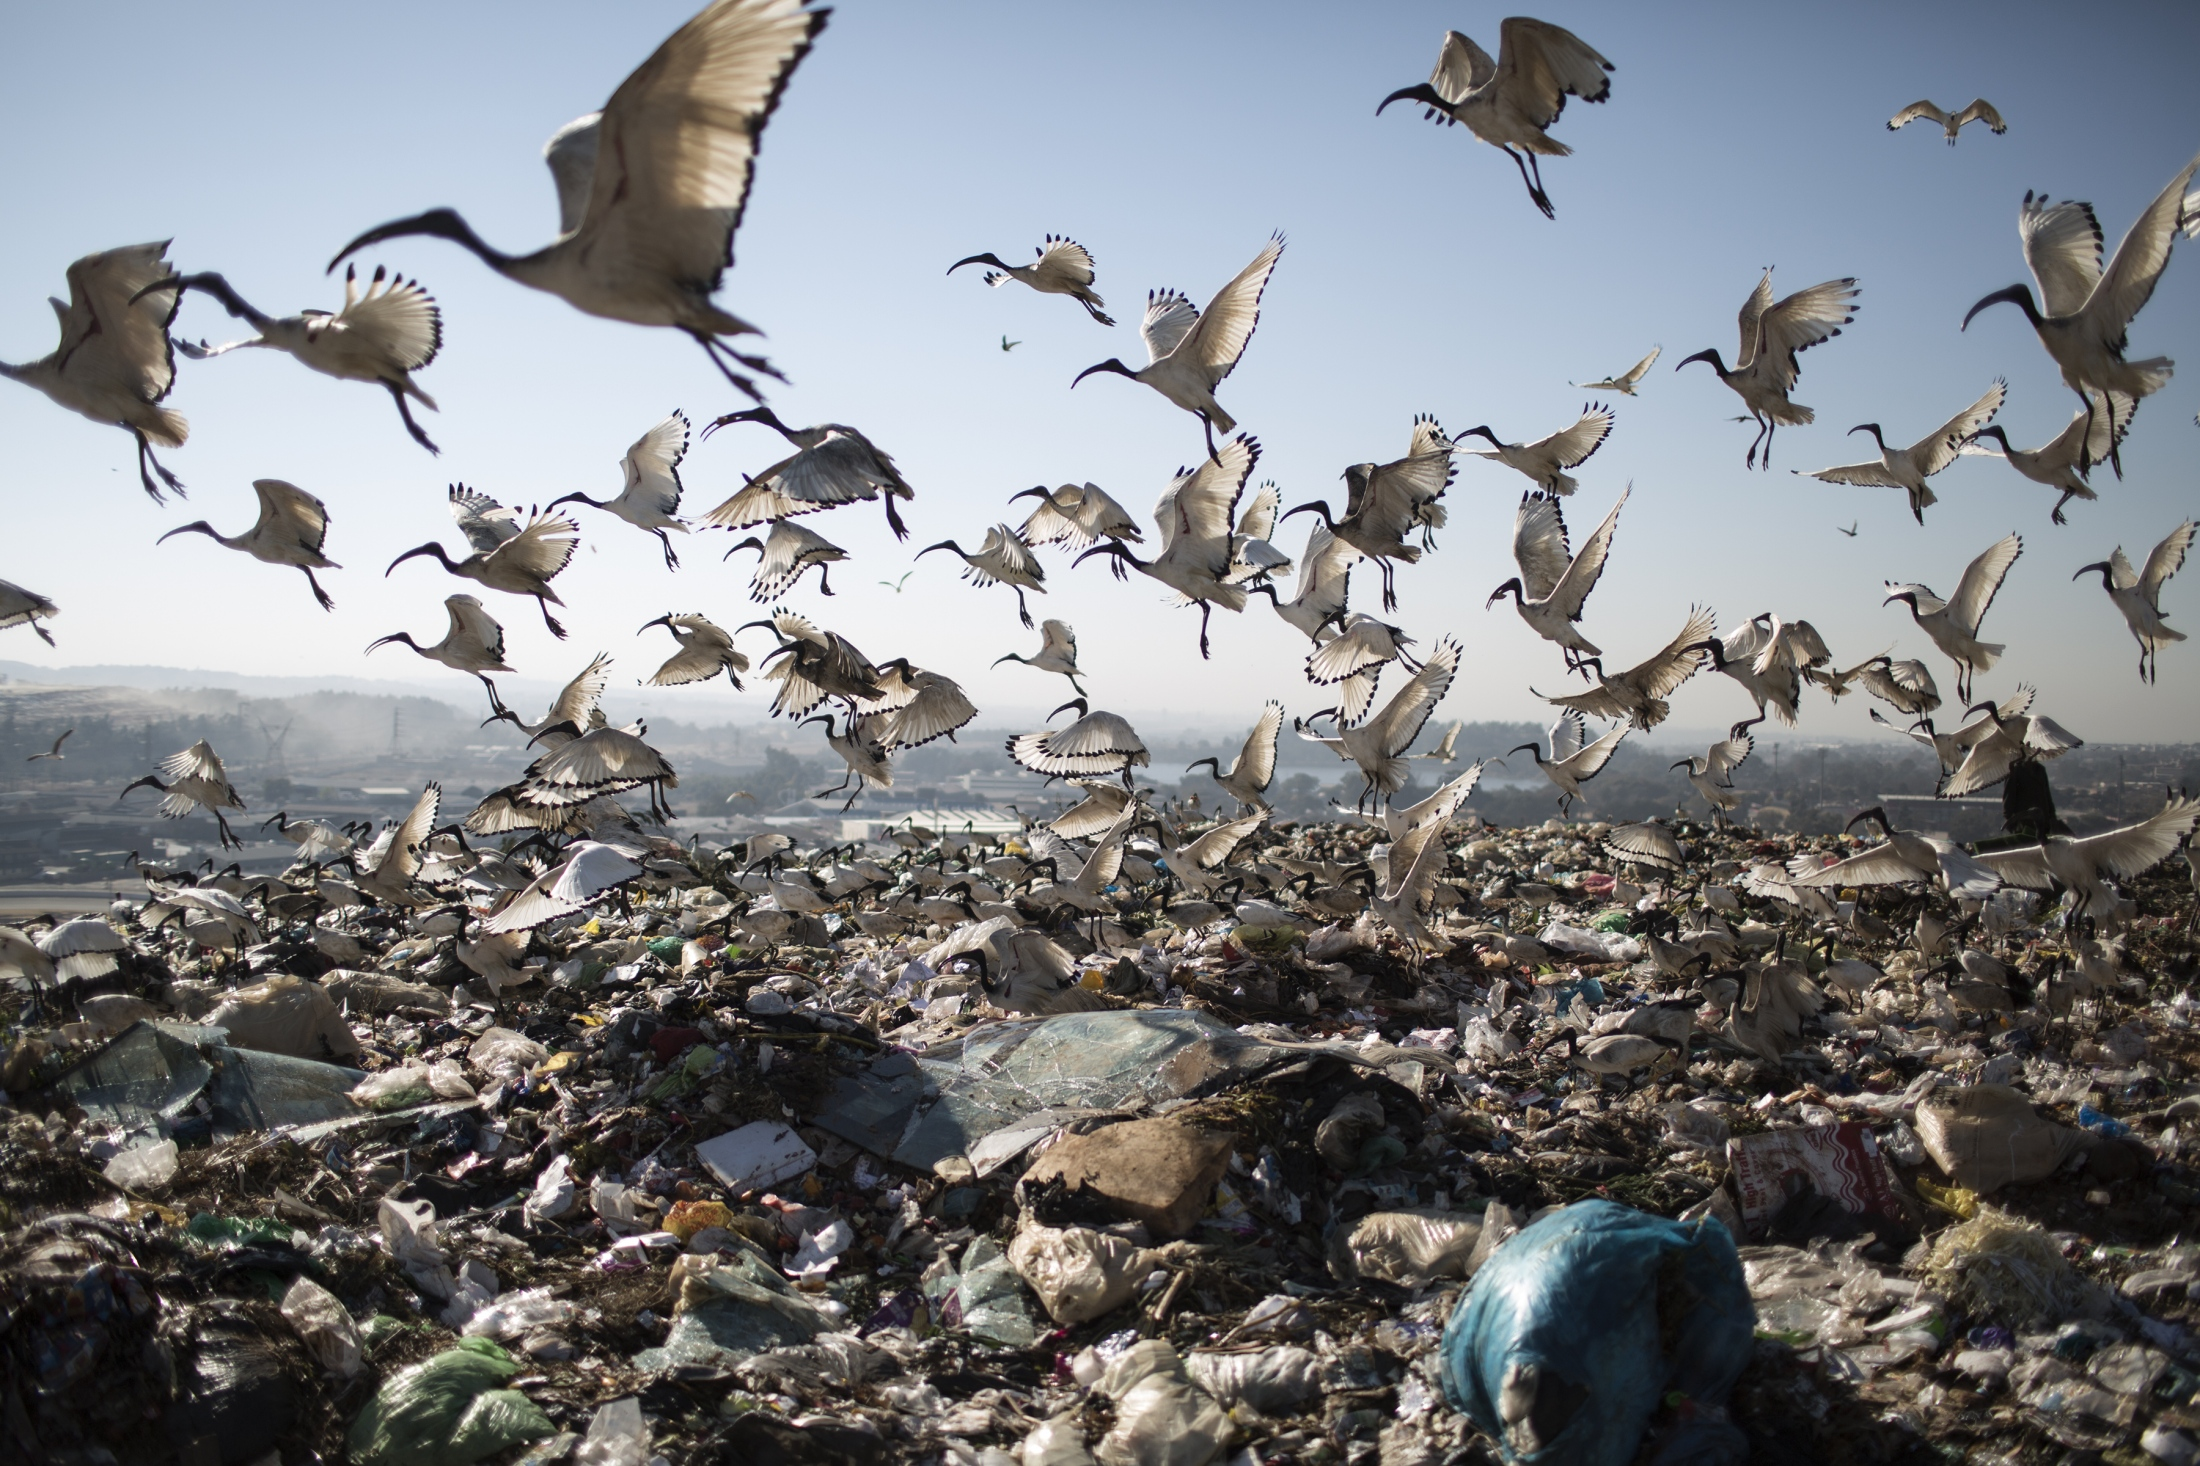 Birds scavenge from the waste at Robinson Deep landfill, Johannesburg's largest landfill.